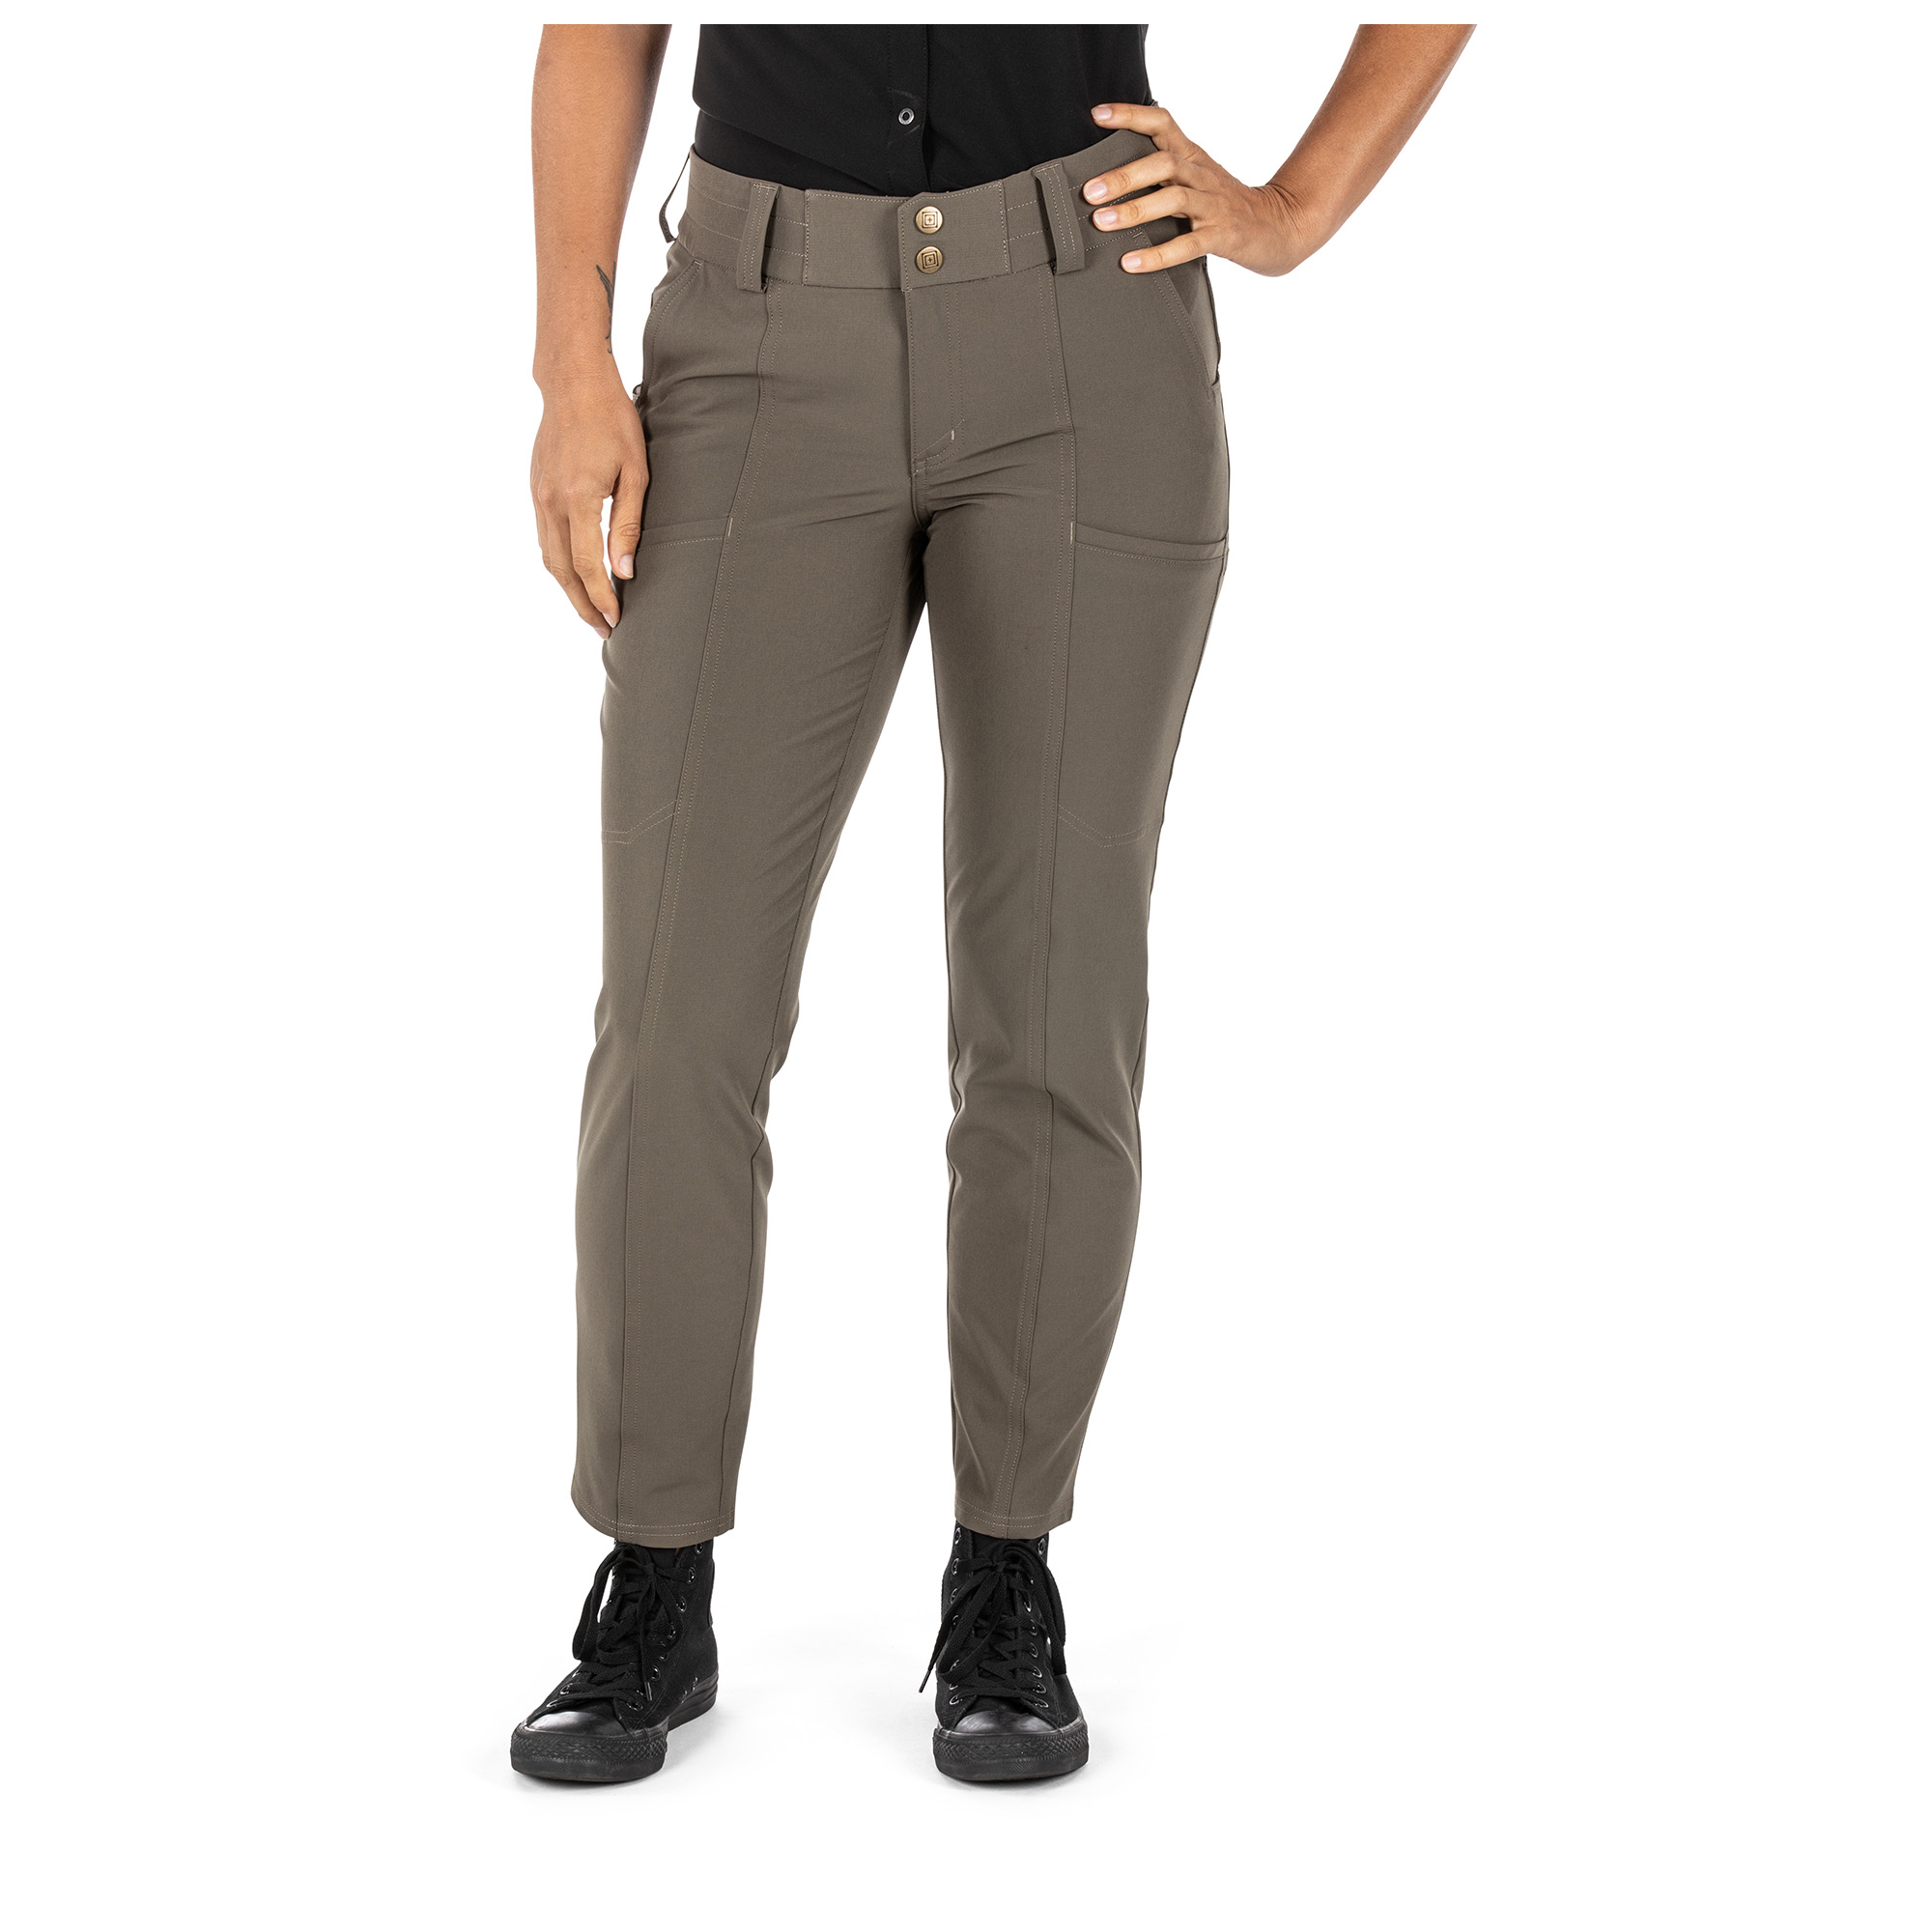 5.11 Tactical Women's Vista Pant (Green), Size 6/R (Cargo Pant)